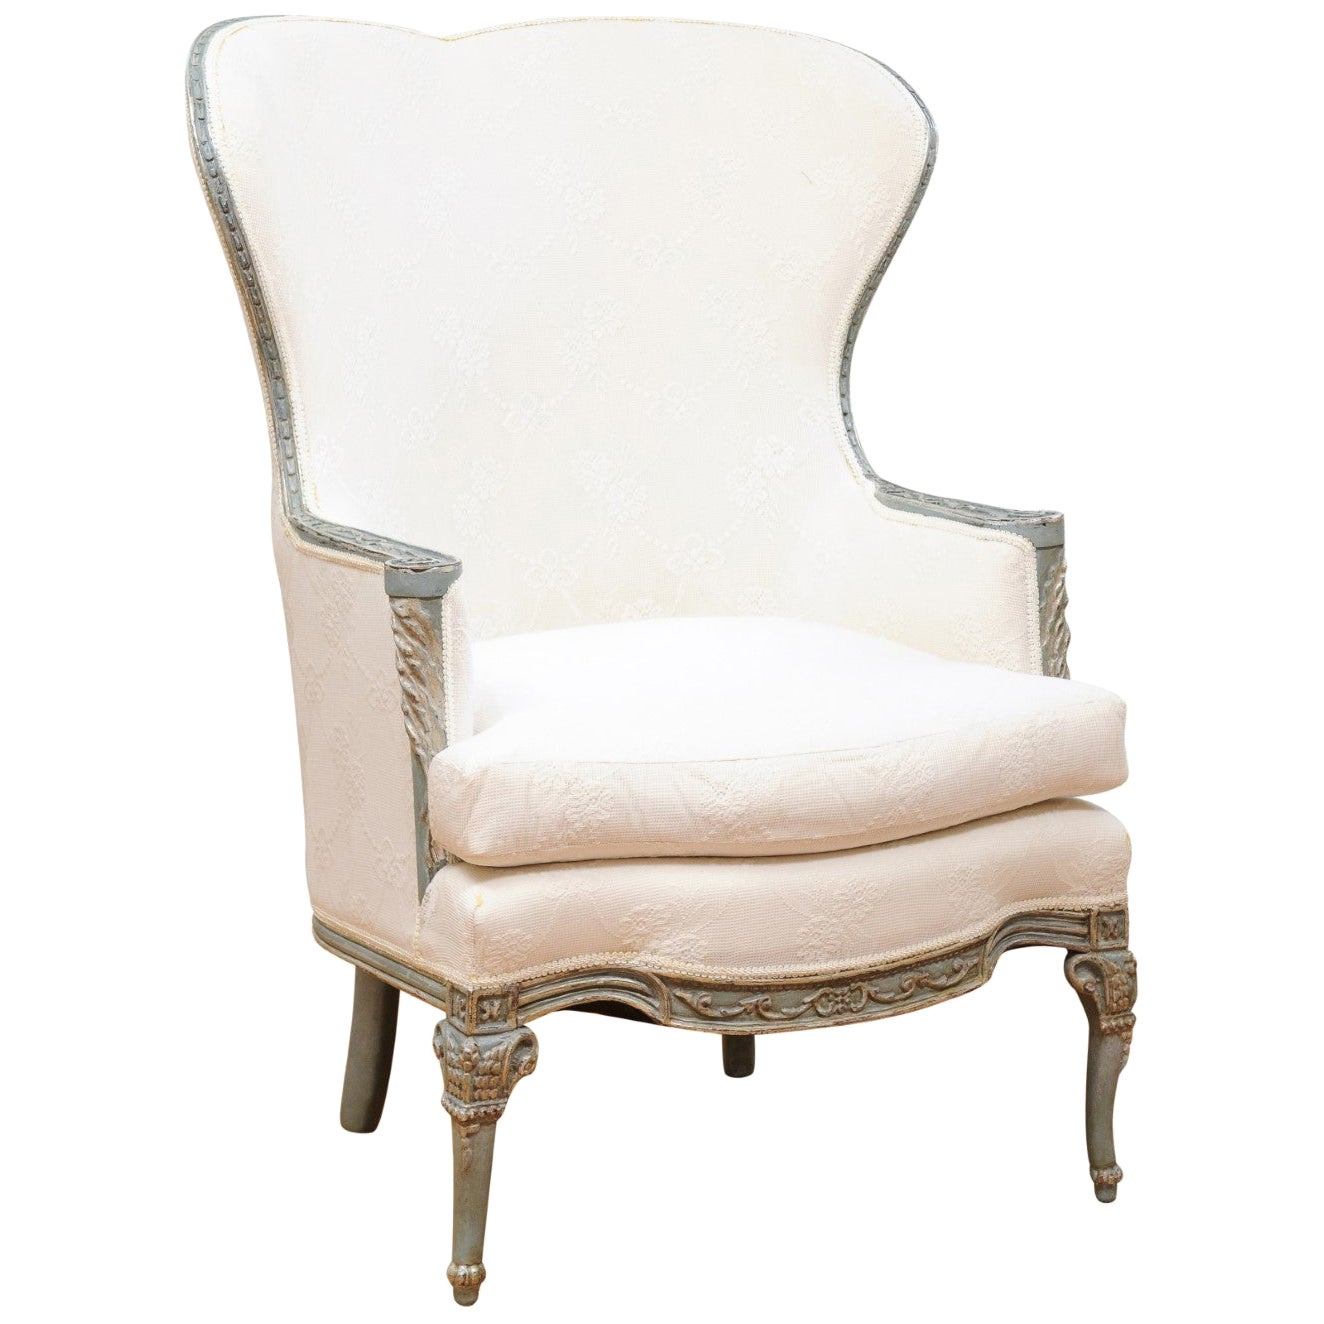 French 1870s Napoleon III Period Wingback Bergère Chair with Carved Decor